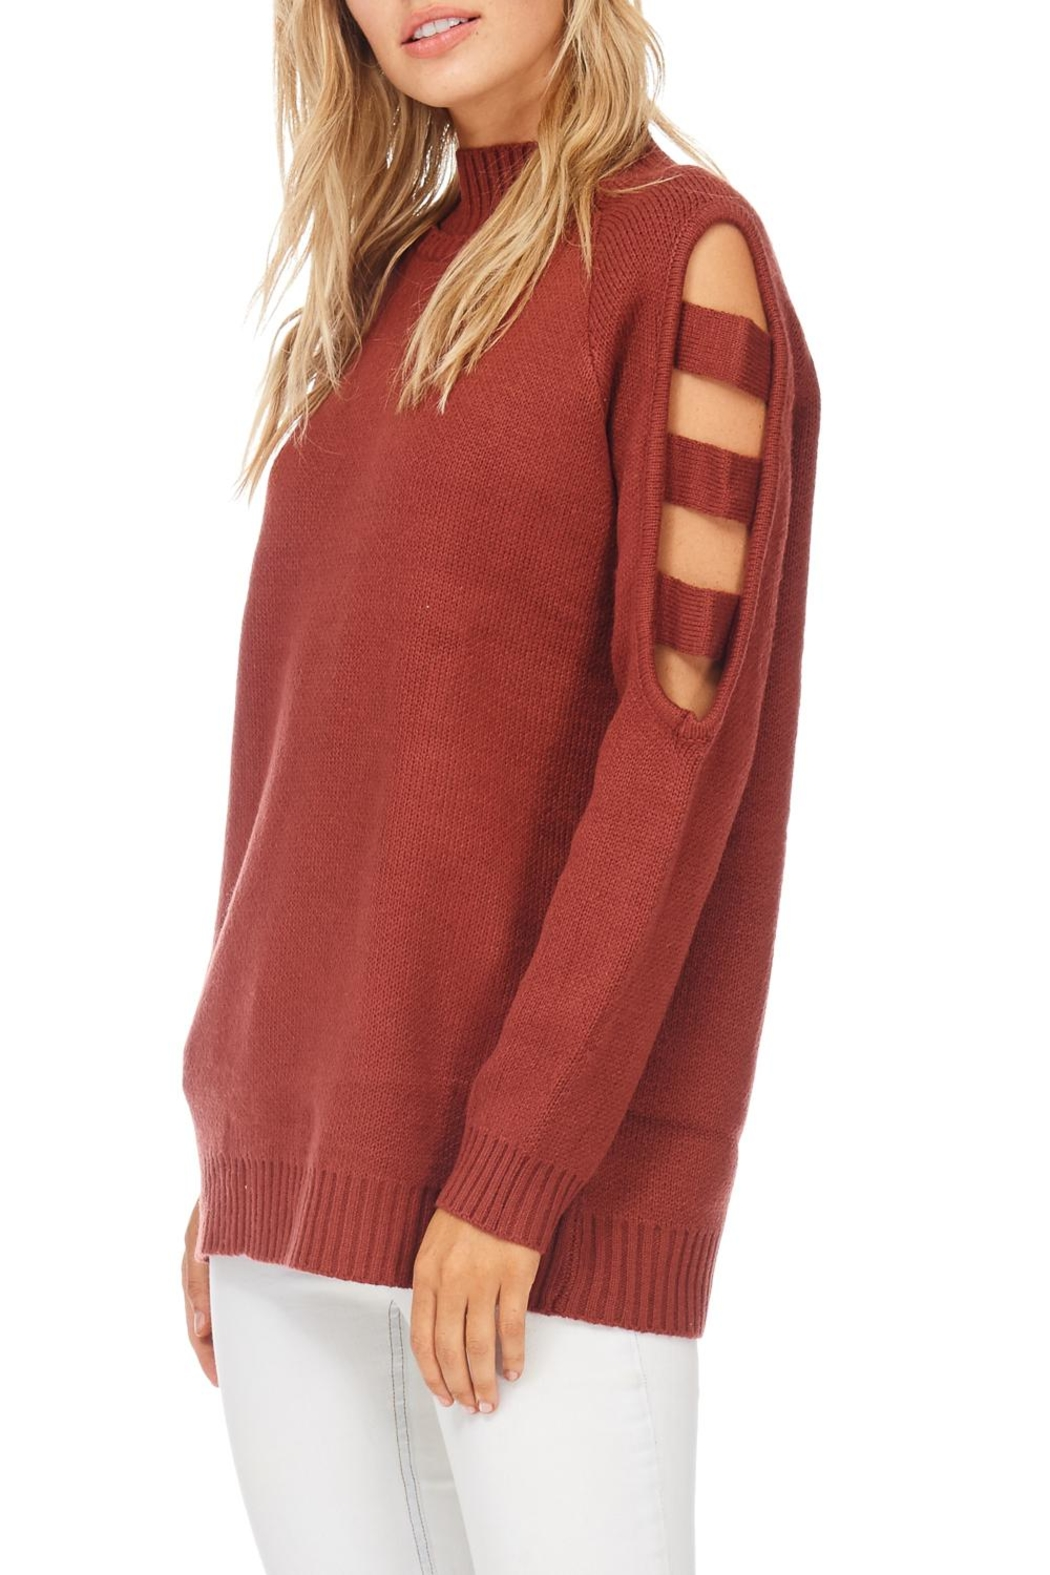 LoveRiche Solid Open Sleeve Sweater - Main Image